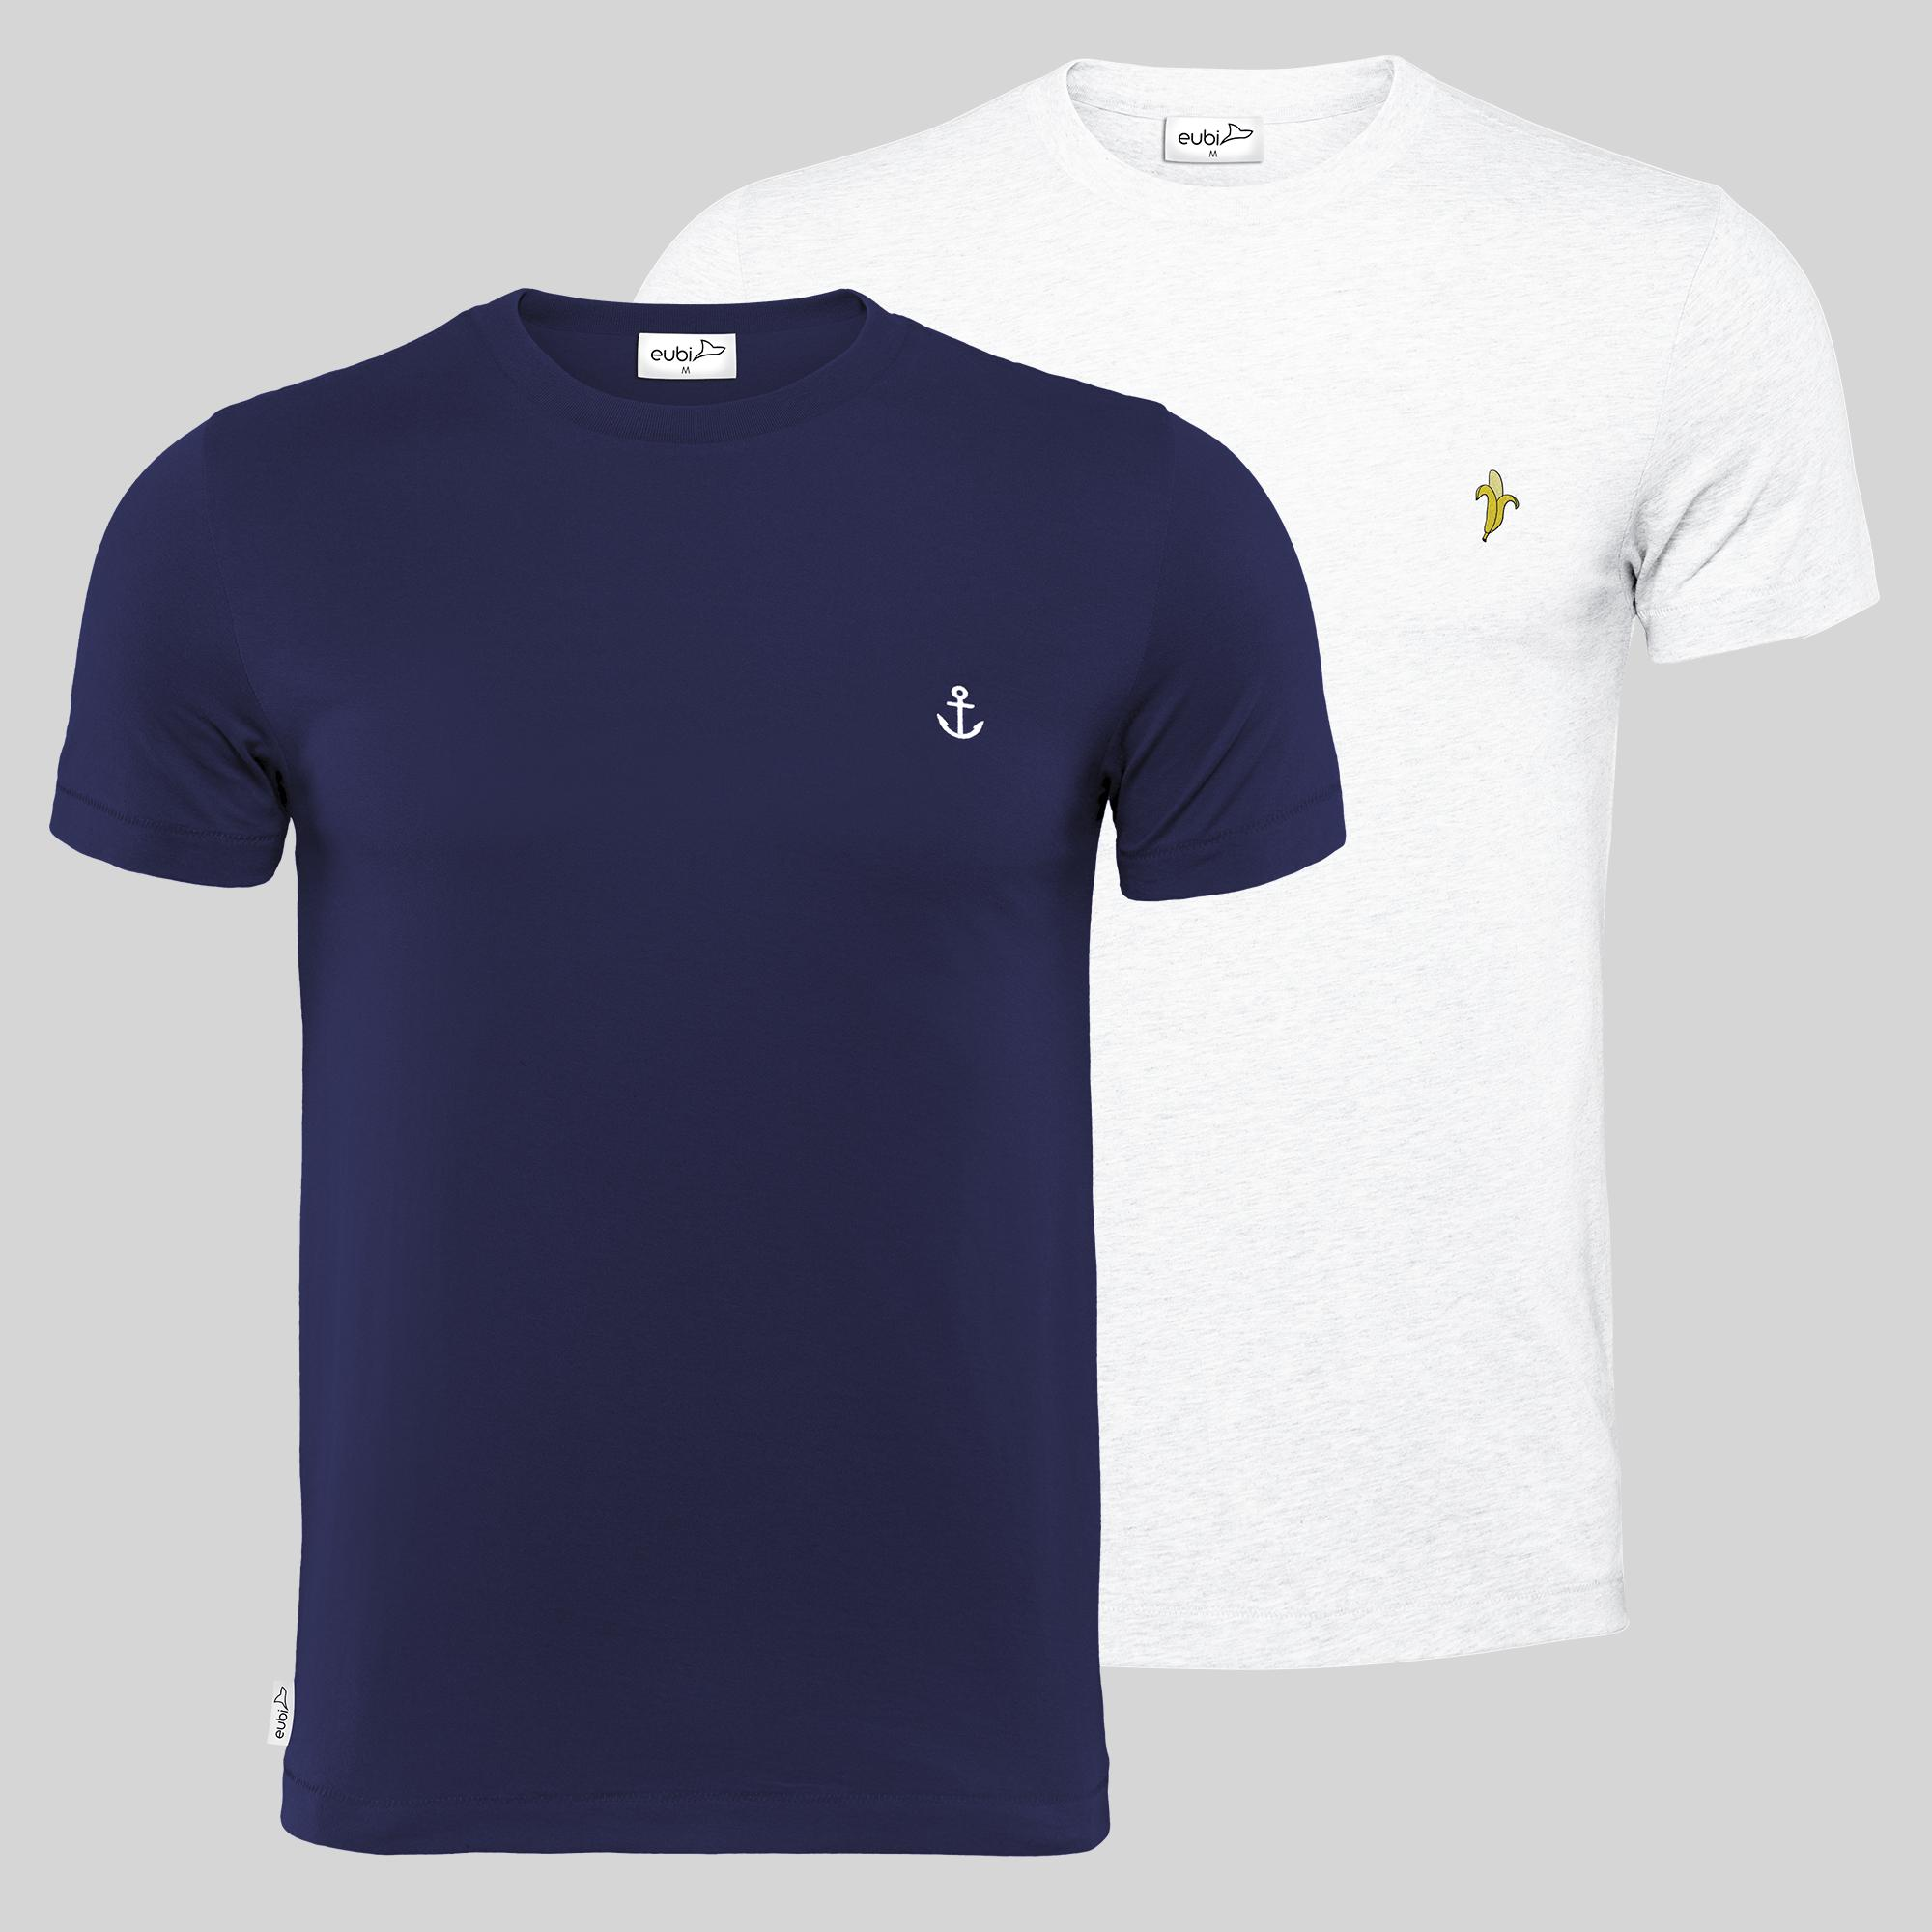 Anchor + Banana Signature T-Shirt Bundle